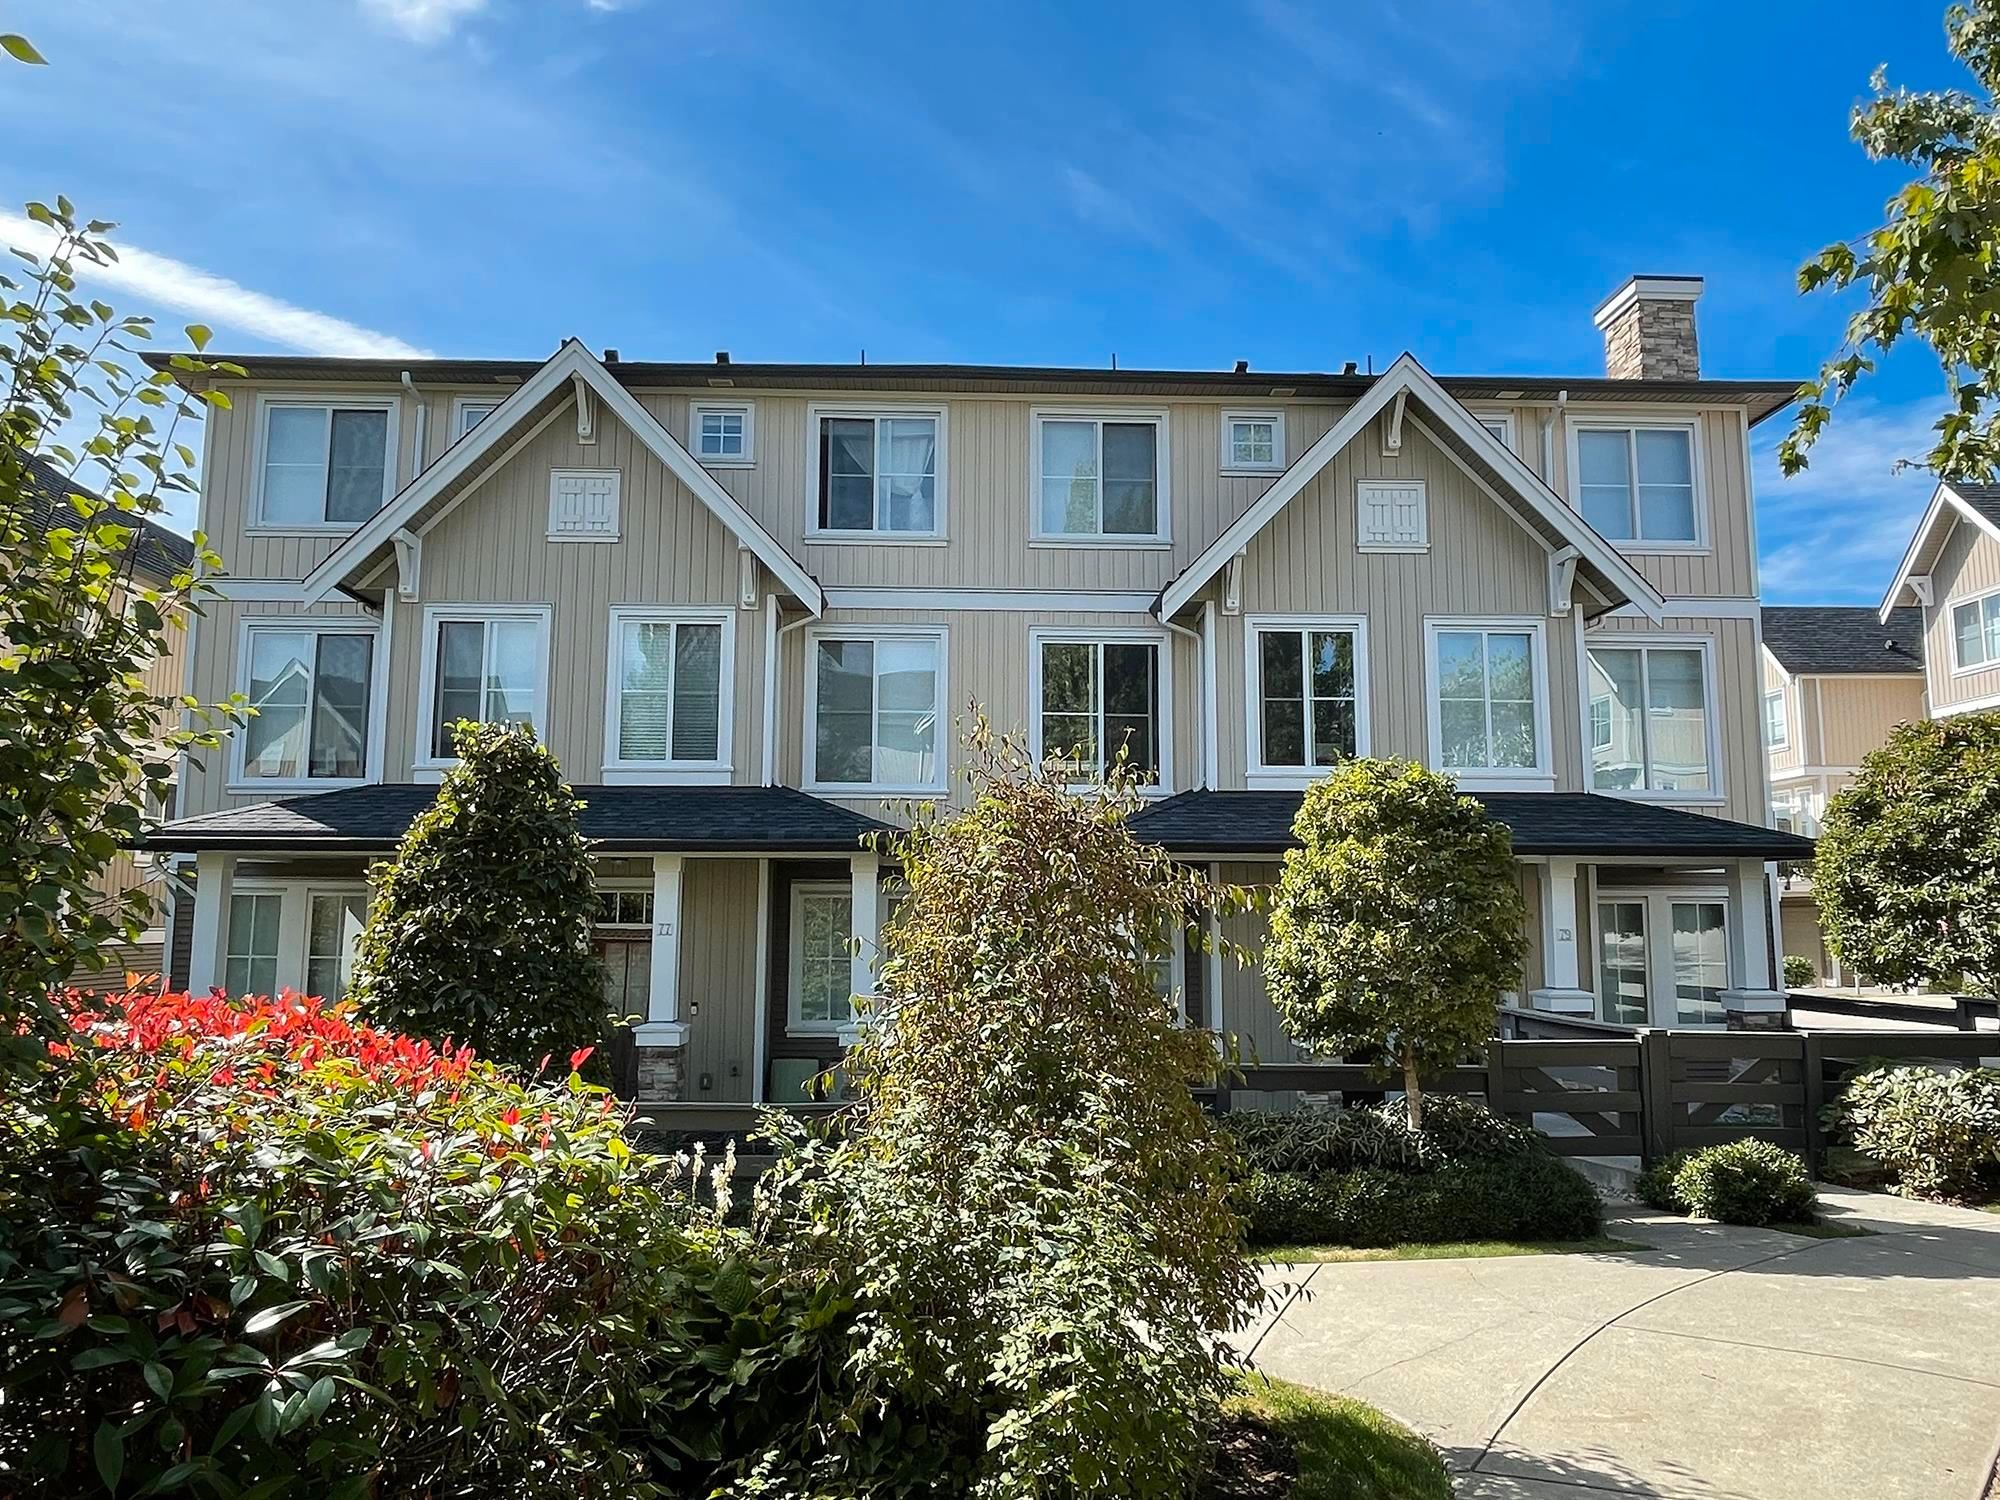 """Main Photo: 78 31032 WESTRIDGE Place in Abbotsford: Abbotsford West Townhouse for sale in """"Harvest"""" : MLS®# R2614683"""